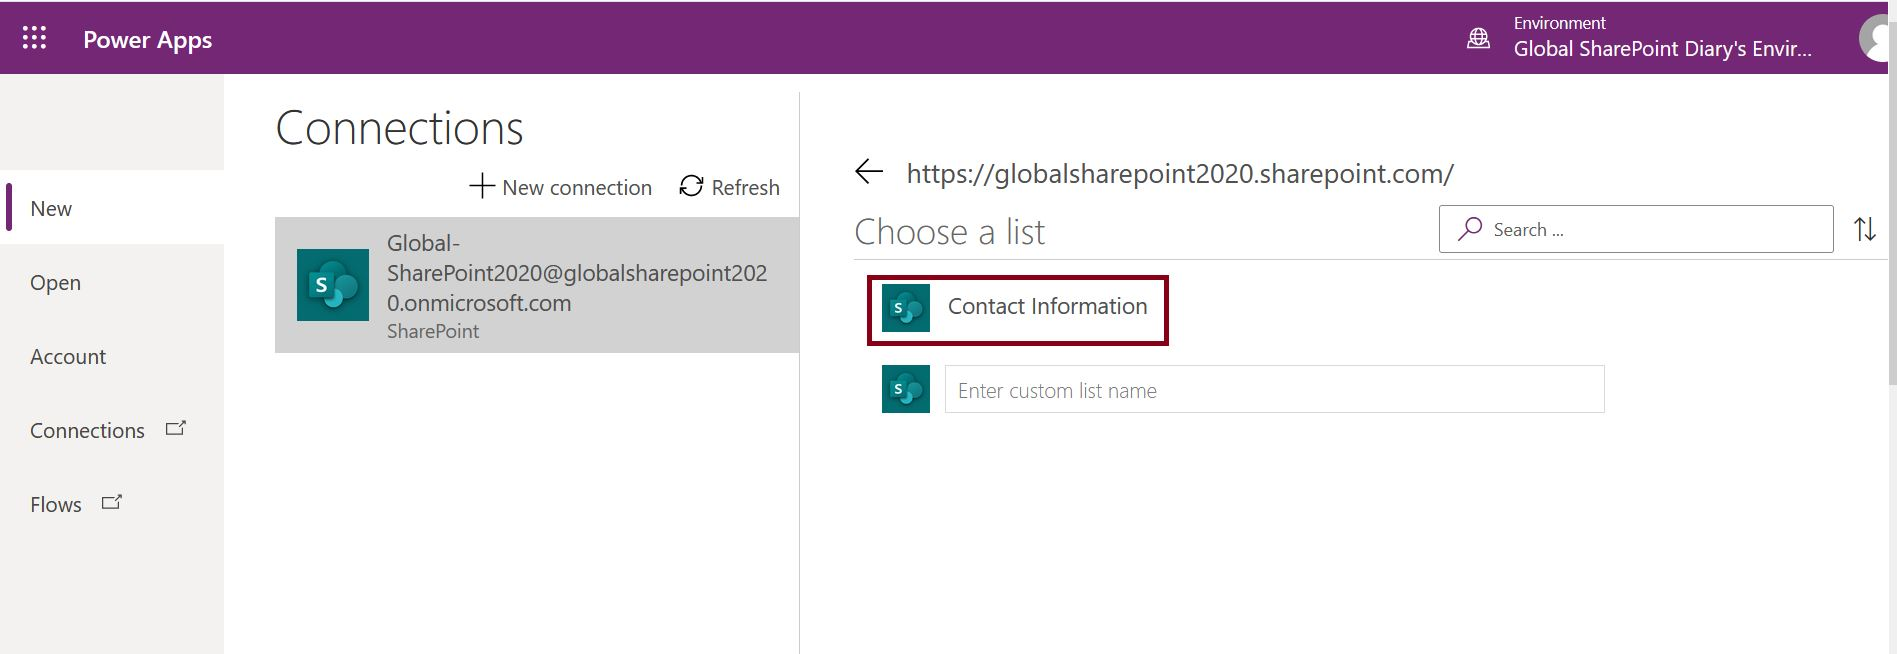 Choose a list from SharePoint Connection in Power Apps model-driven app